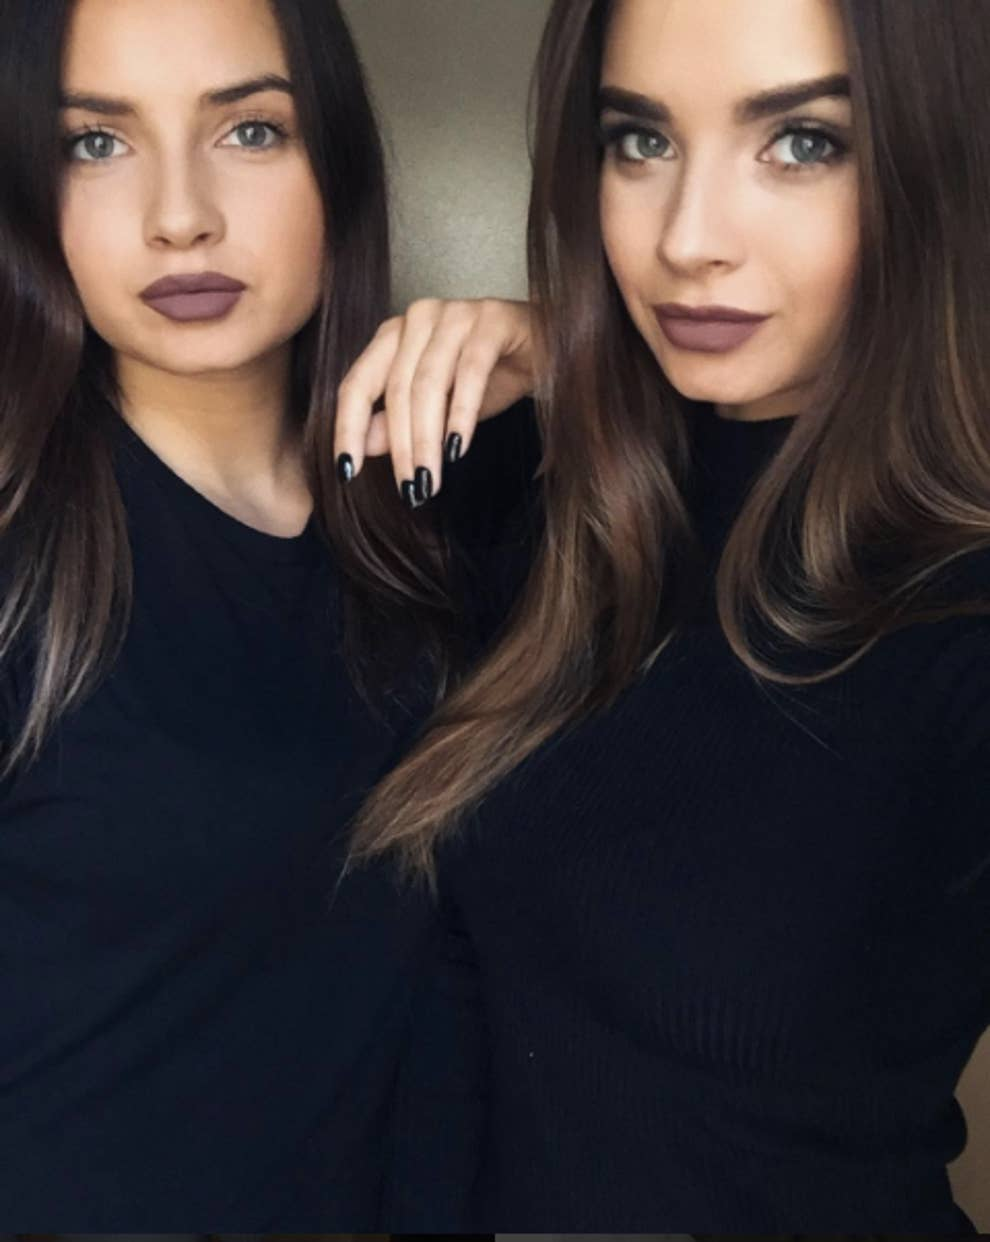 Hottest Twins On Instagram